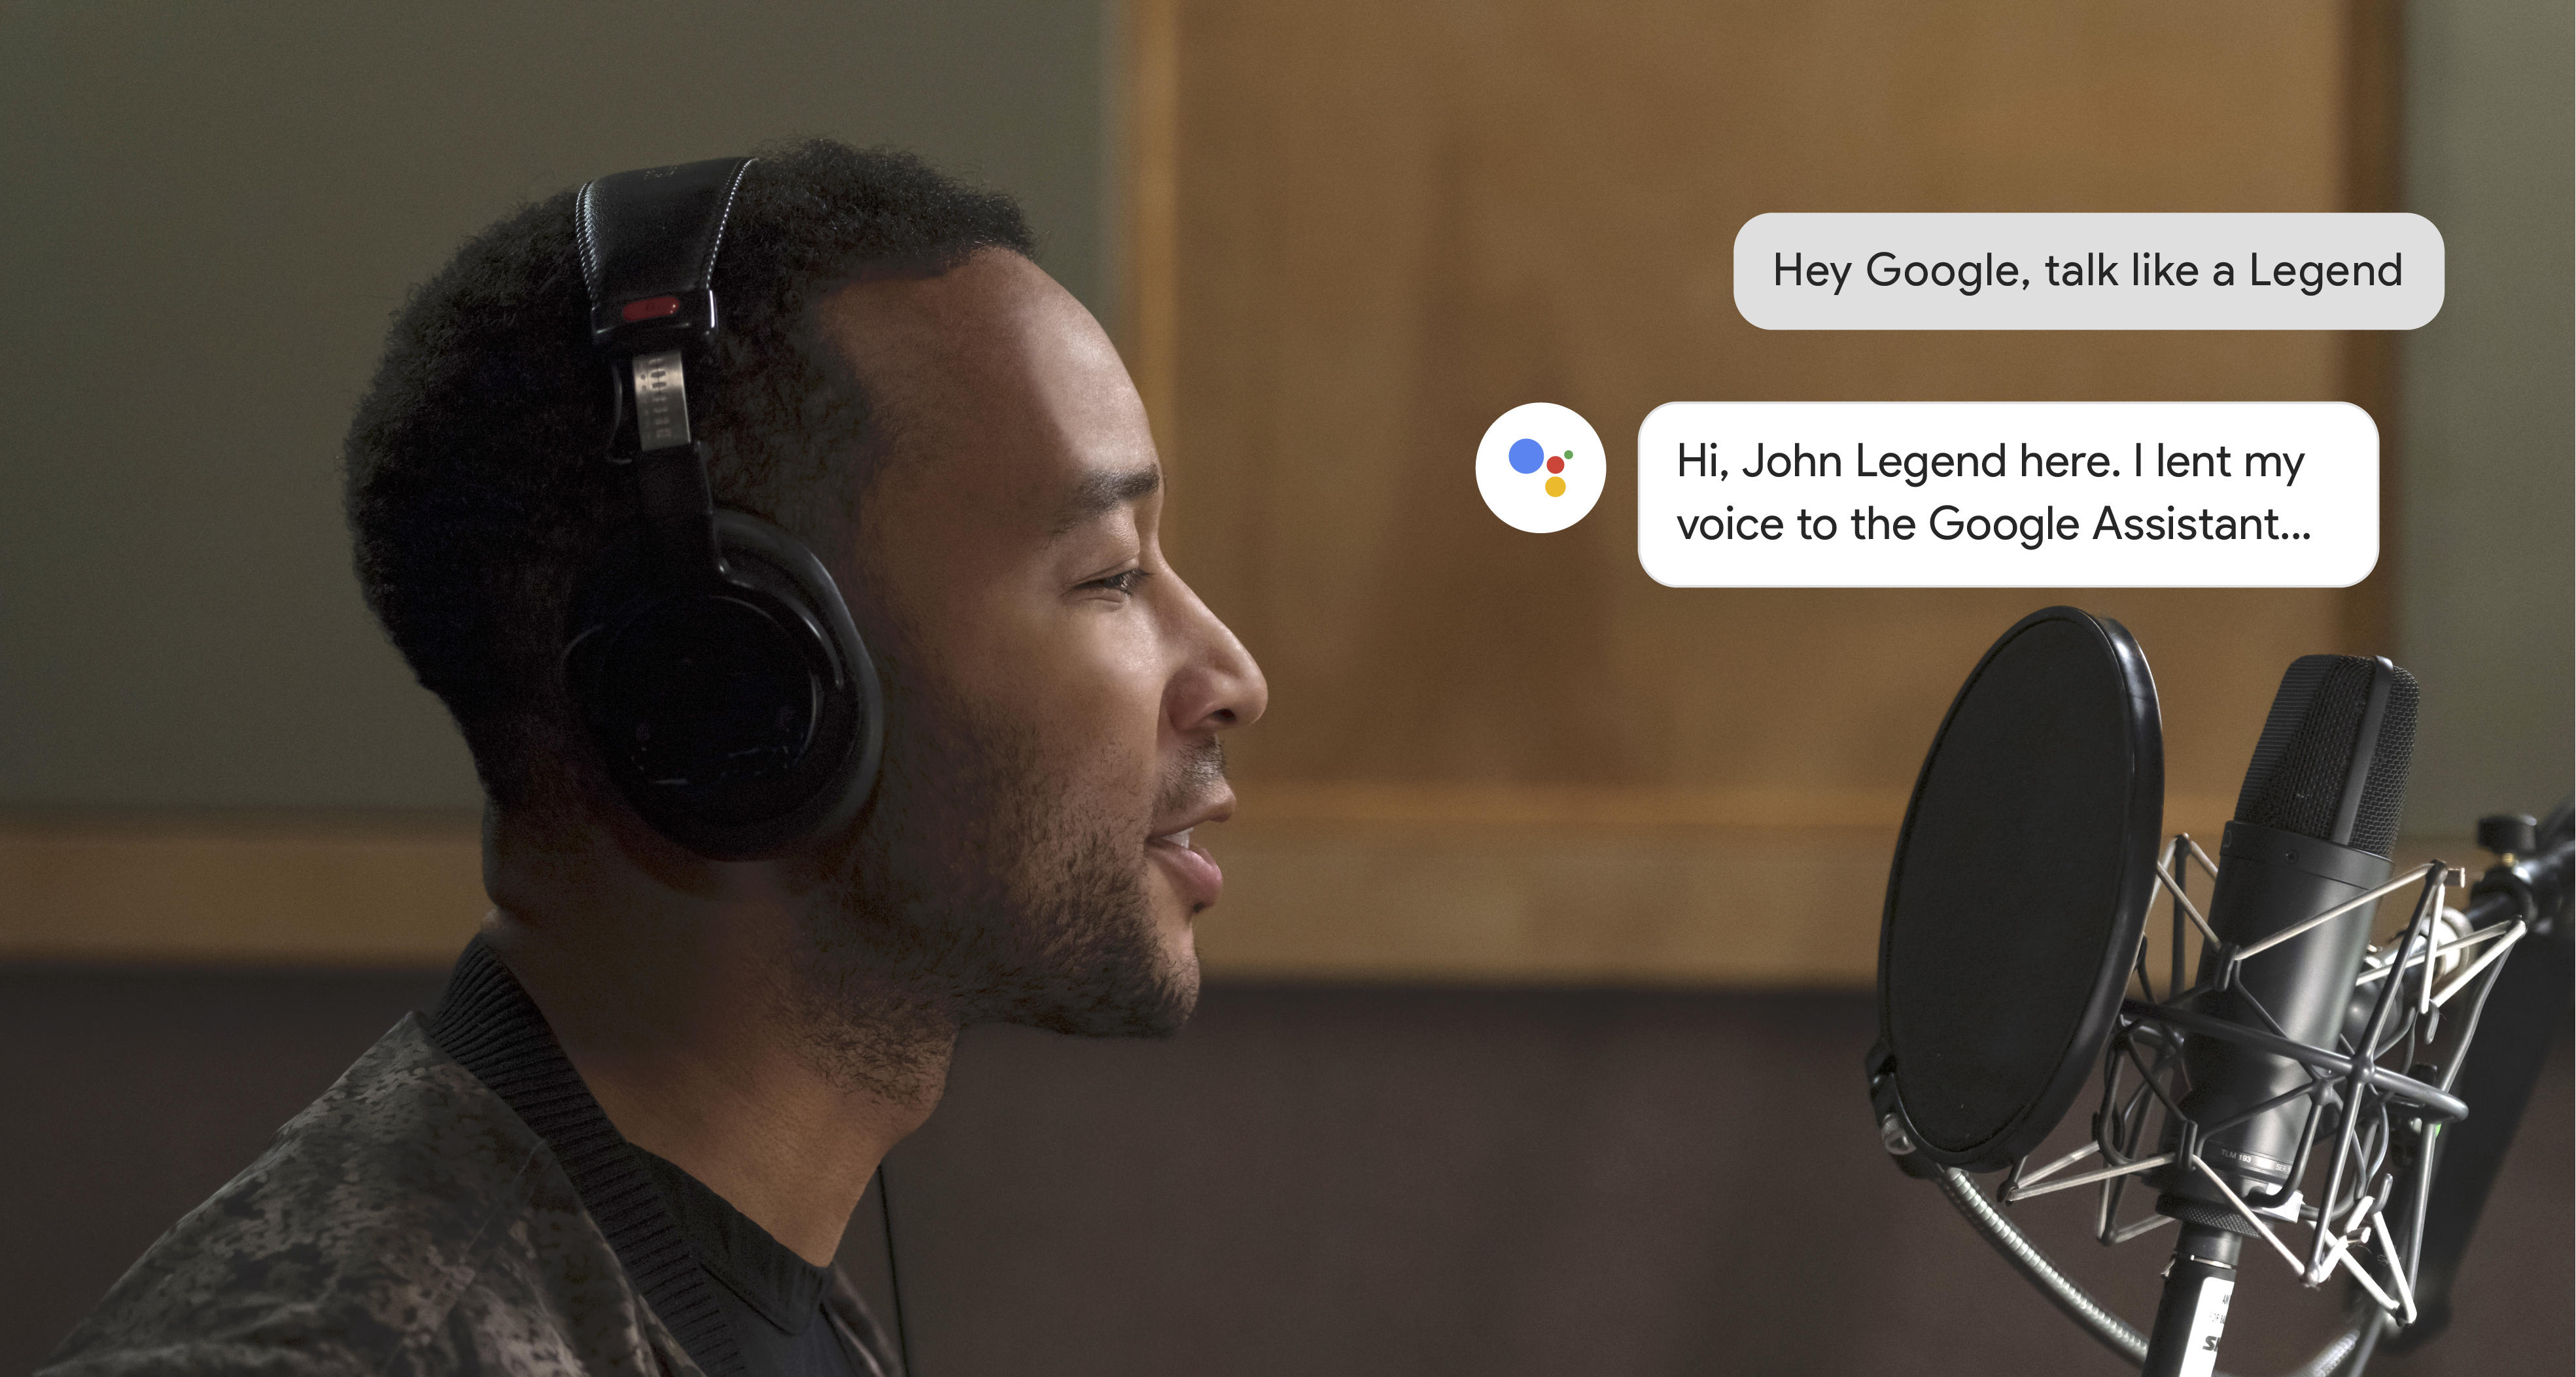 johnlegend-assistant-keywordhero